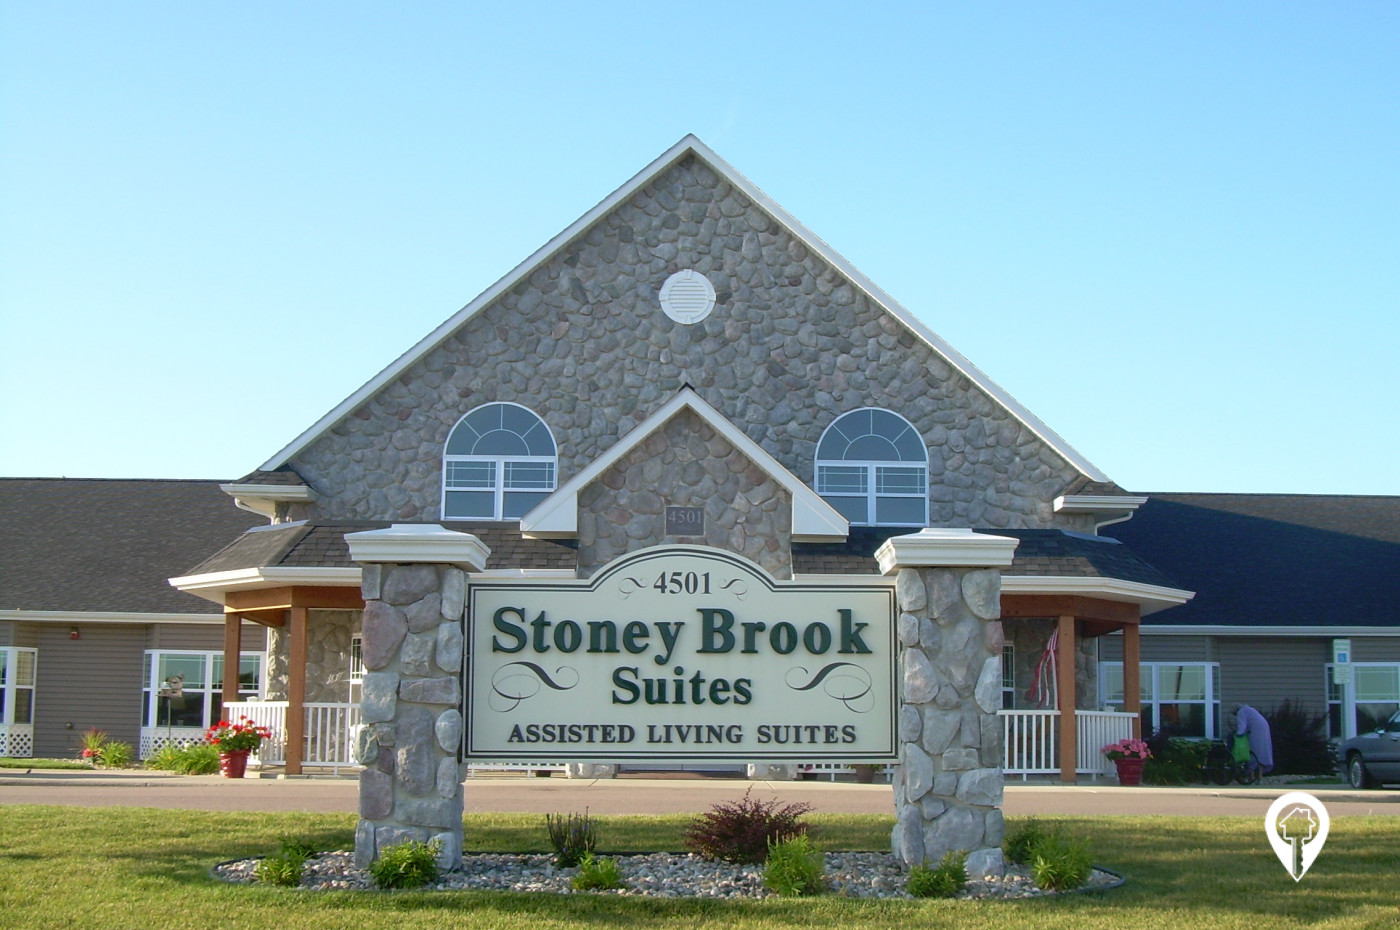 StoneyBrook Suites Assisted Living Video Tour